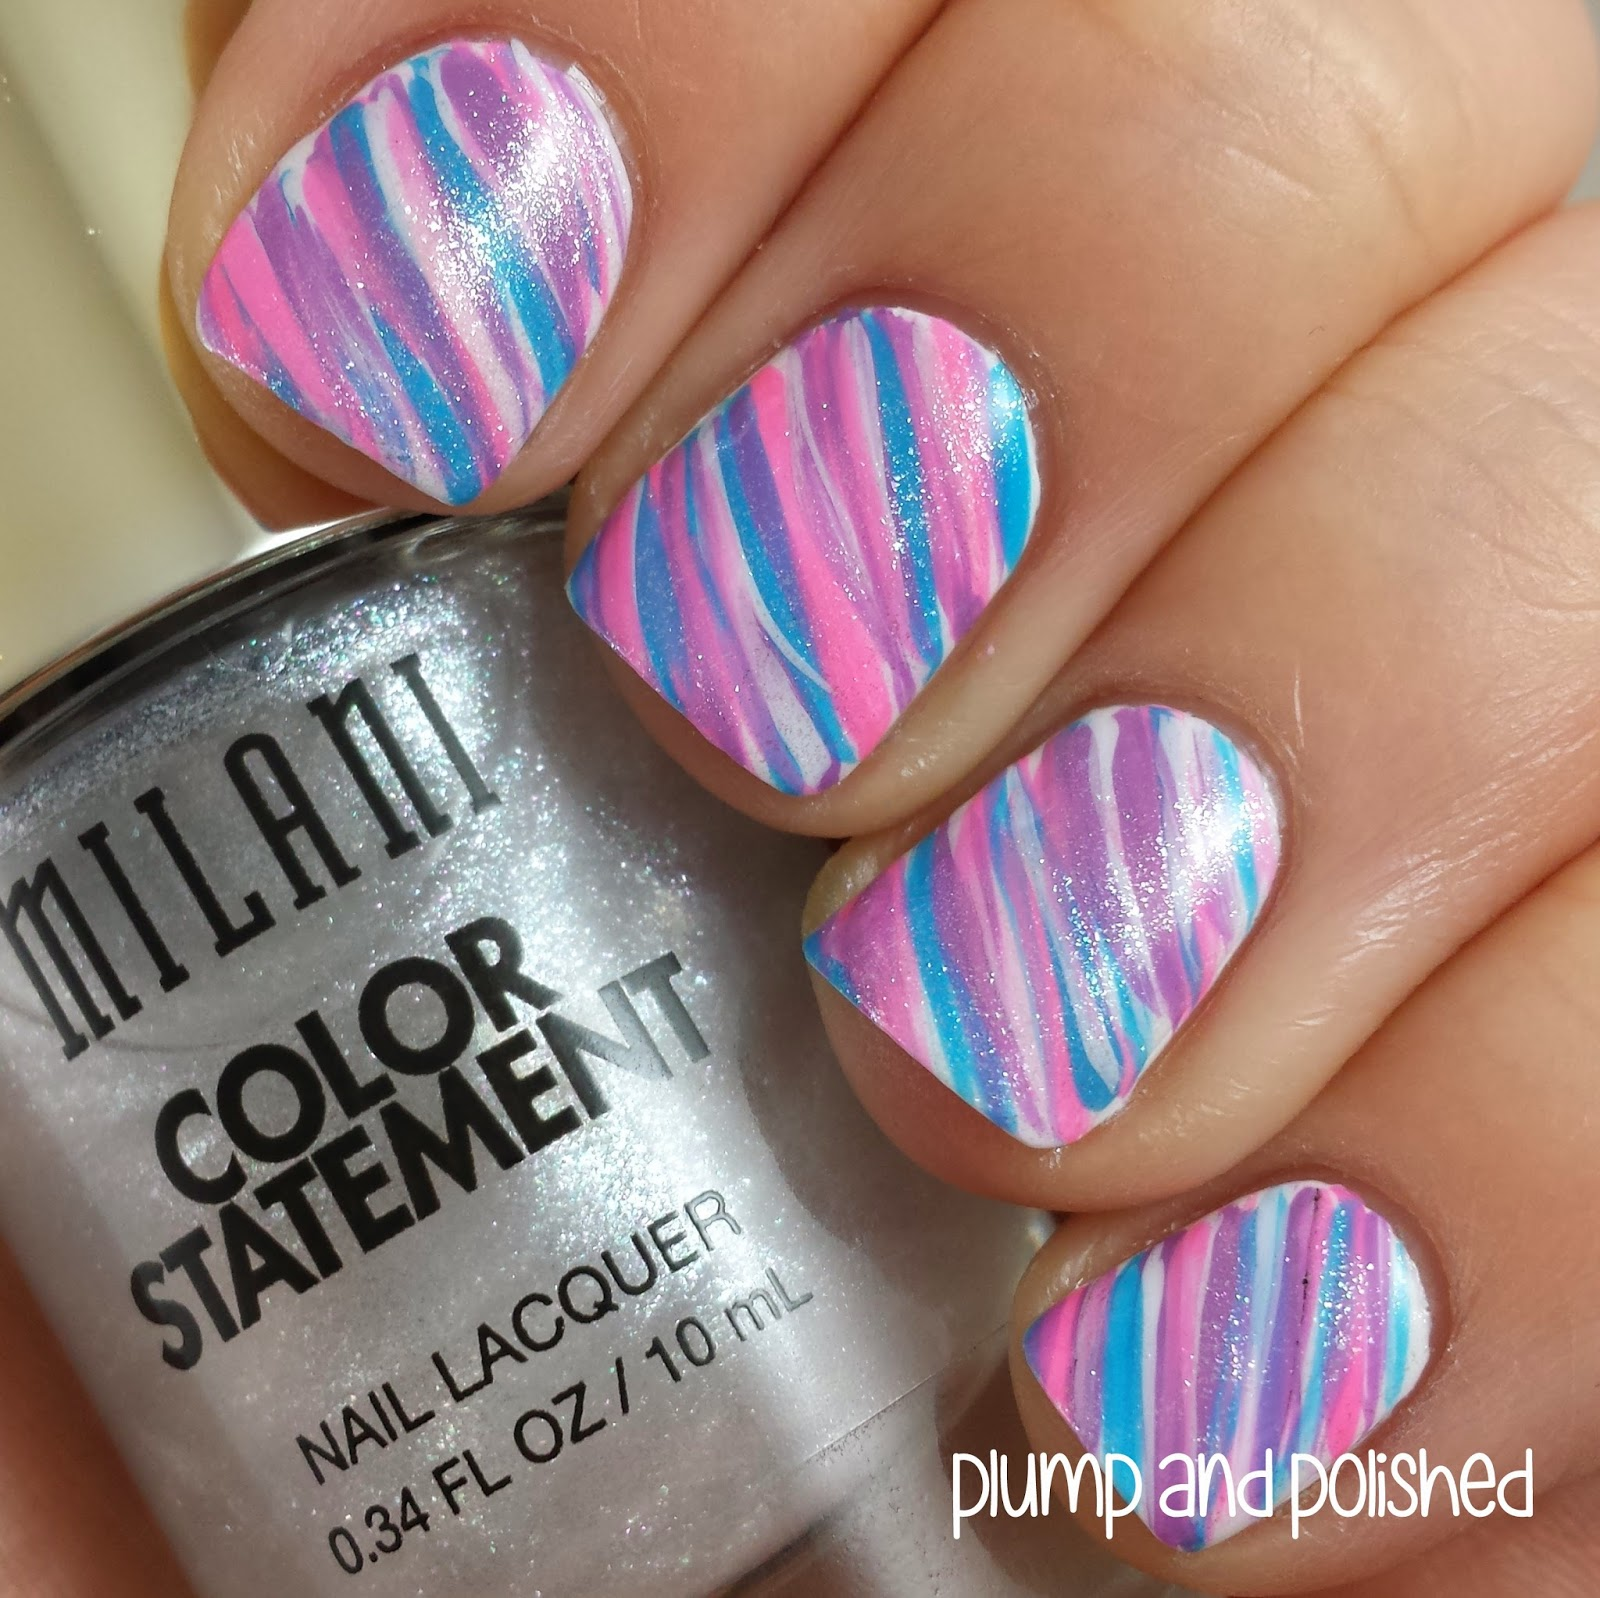 Cotton Candy Nail Polish Color: Plump And Polished: Milani Color Statement